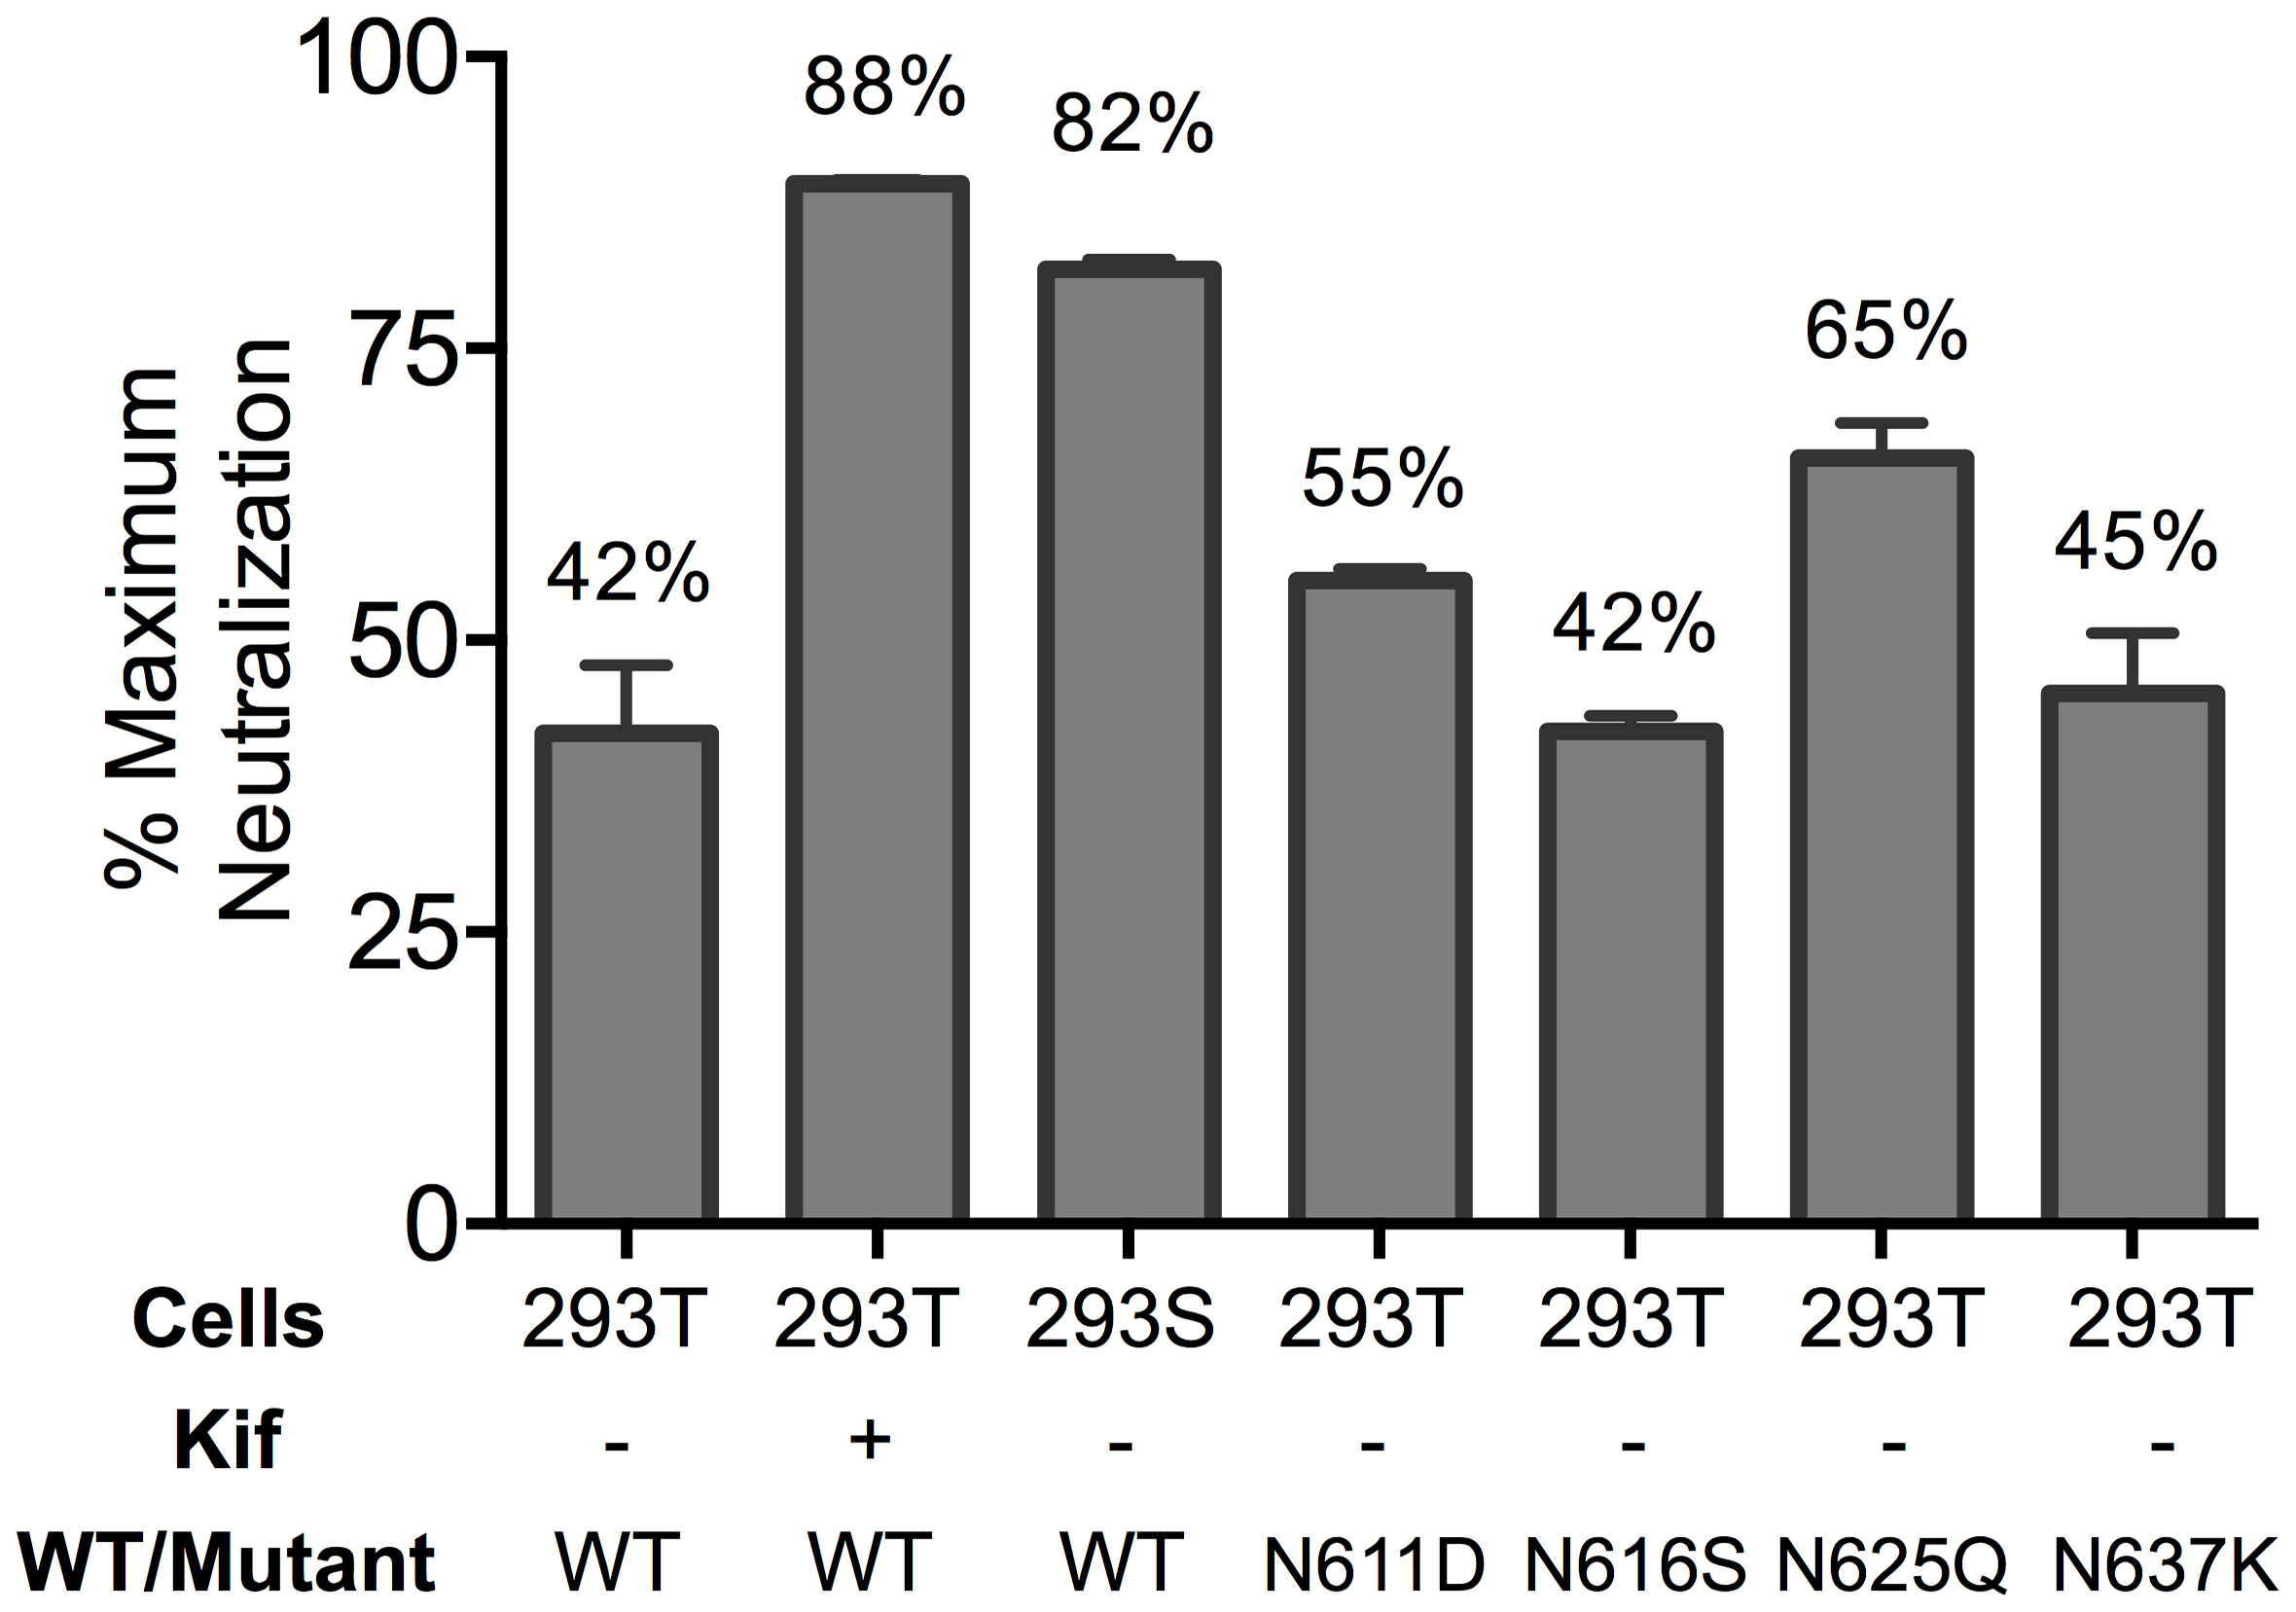 Glycosylation state of MPER mutant HIV-1 Env influences extent of maximum neutralization by 10E8.